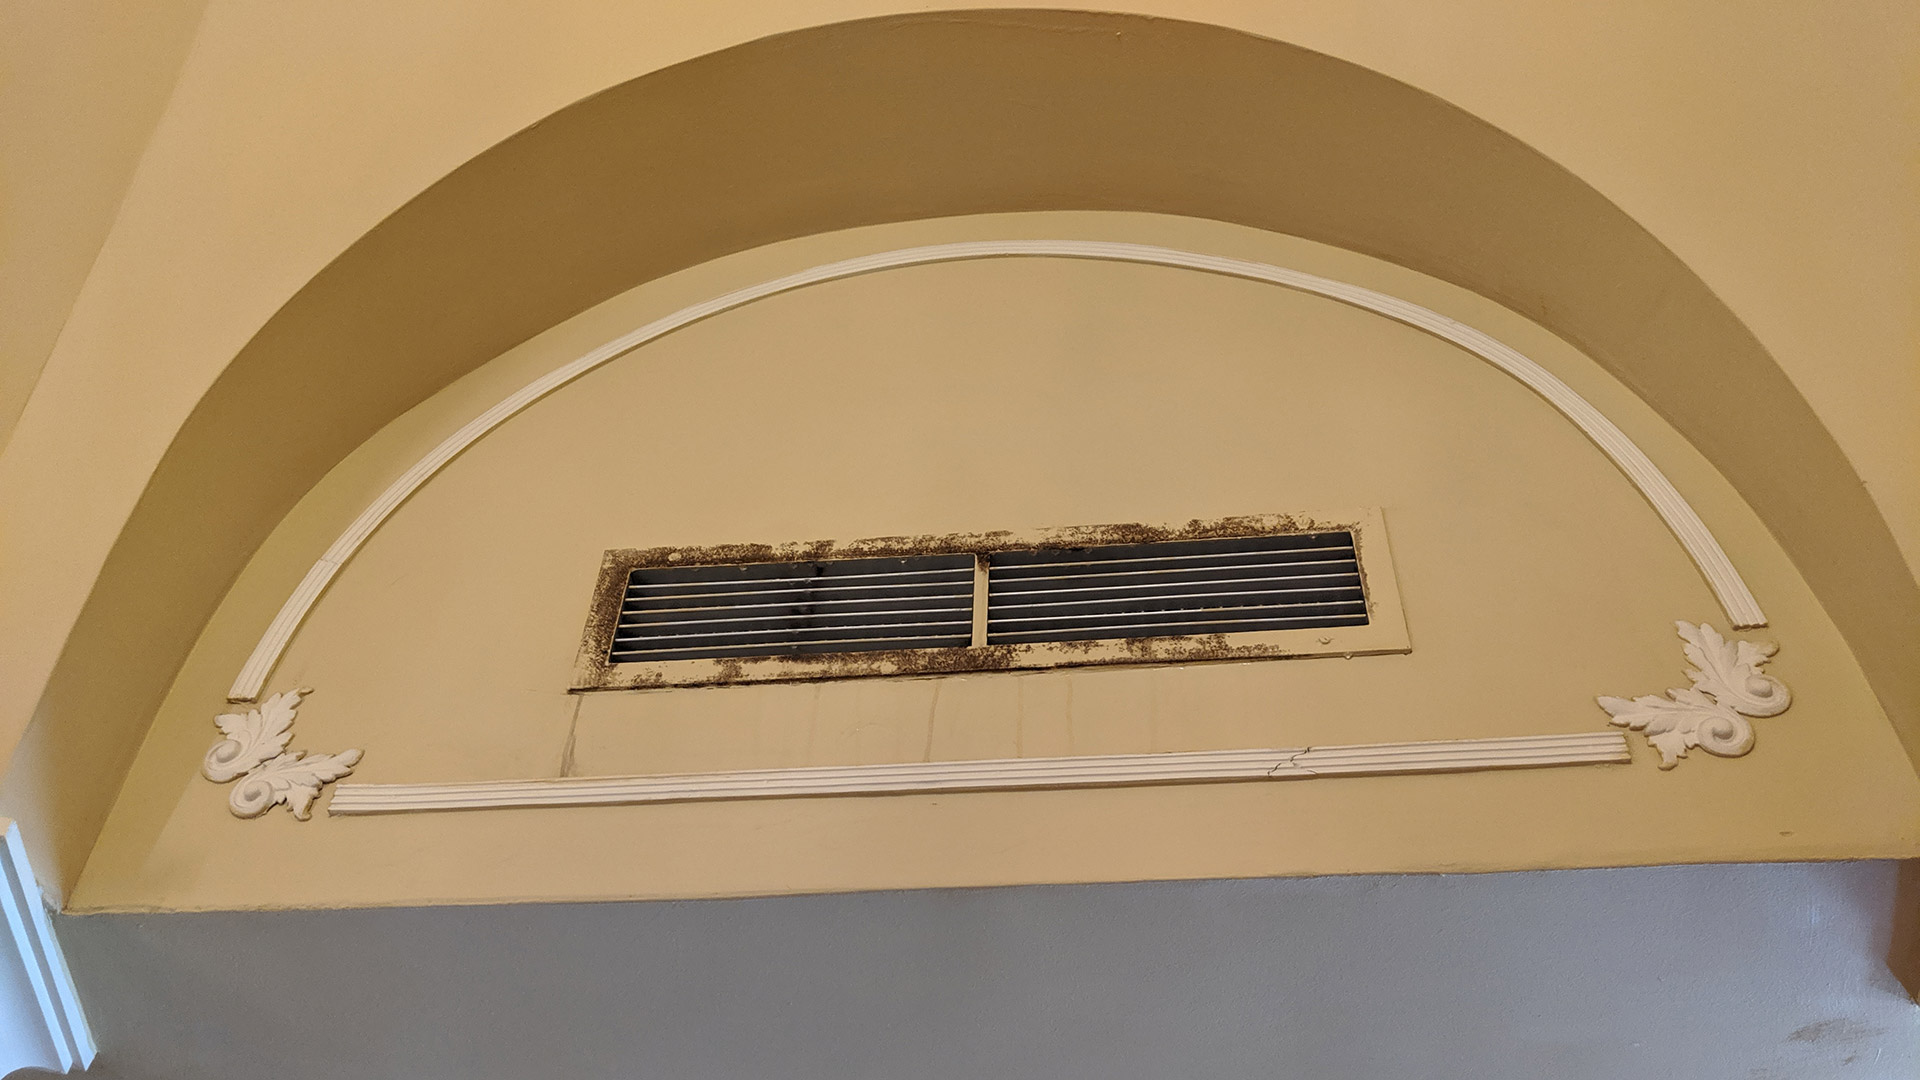 WHAT? Water damage can be caused by your air conditioning unit?